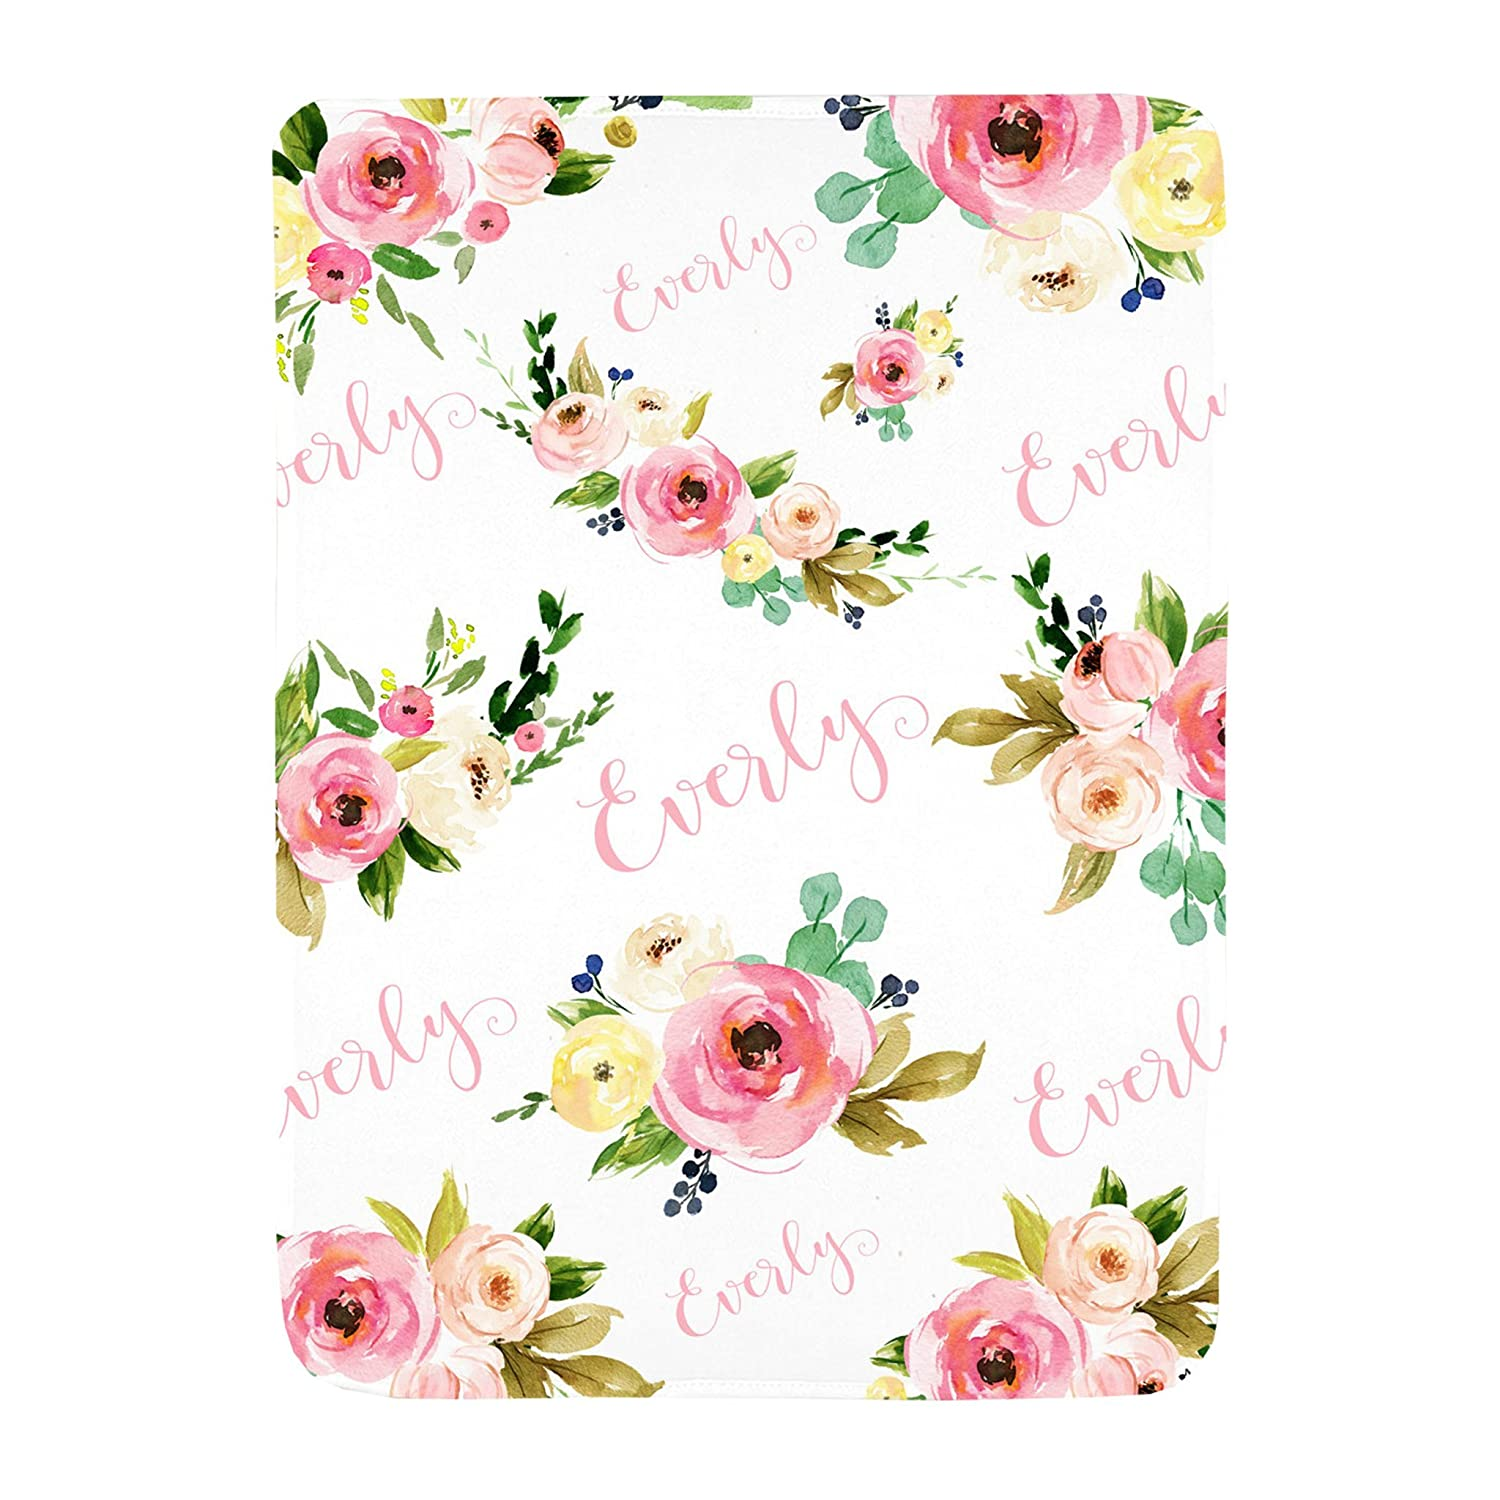 Sobilar Personalized Floral Baby Blanket, Personalized Baby Blanket, Baby Shower Gift, Swaddle Blanket, Baby Girl Gift